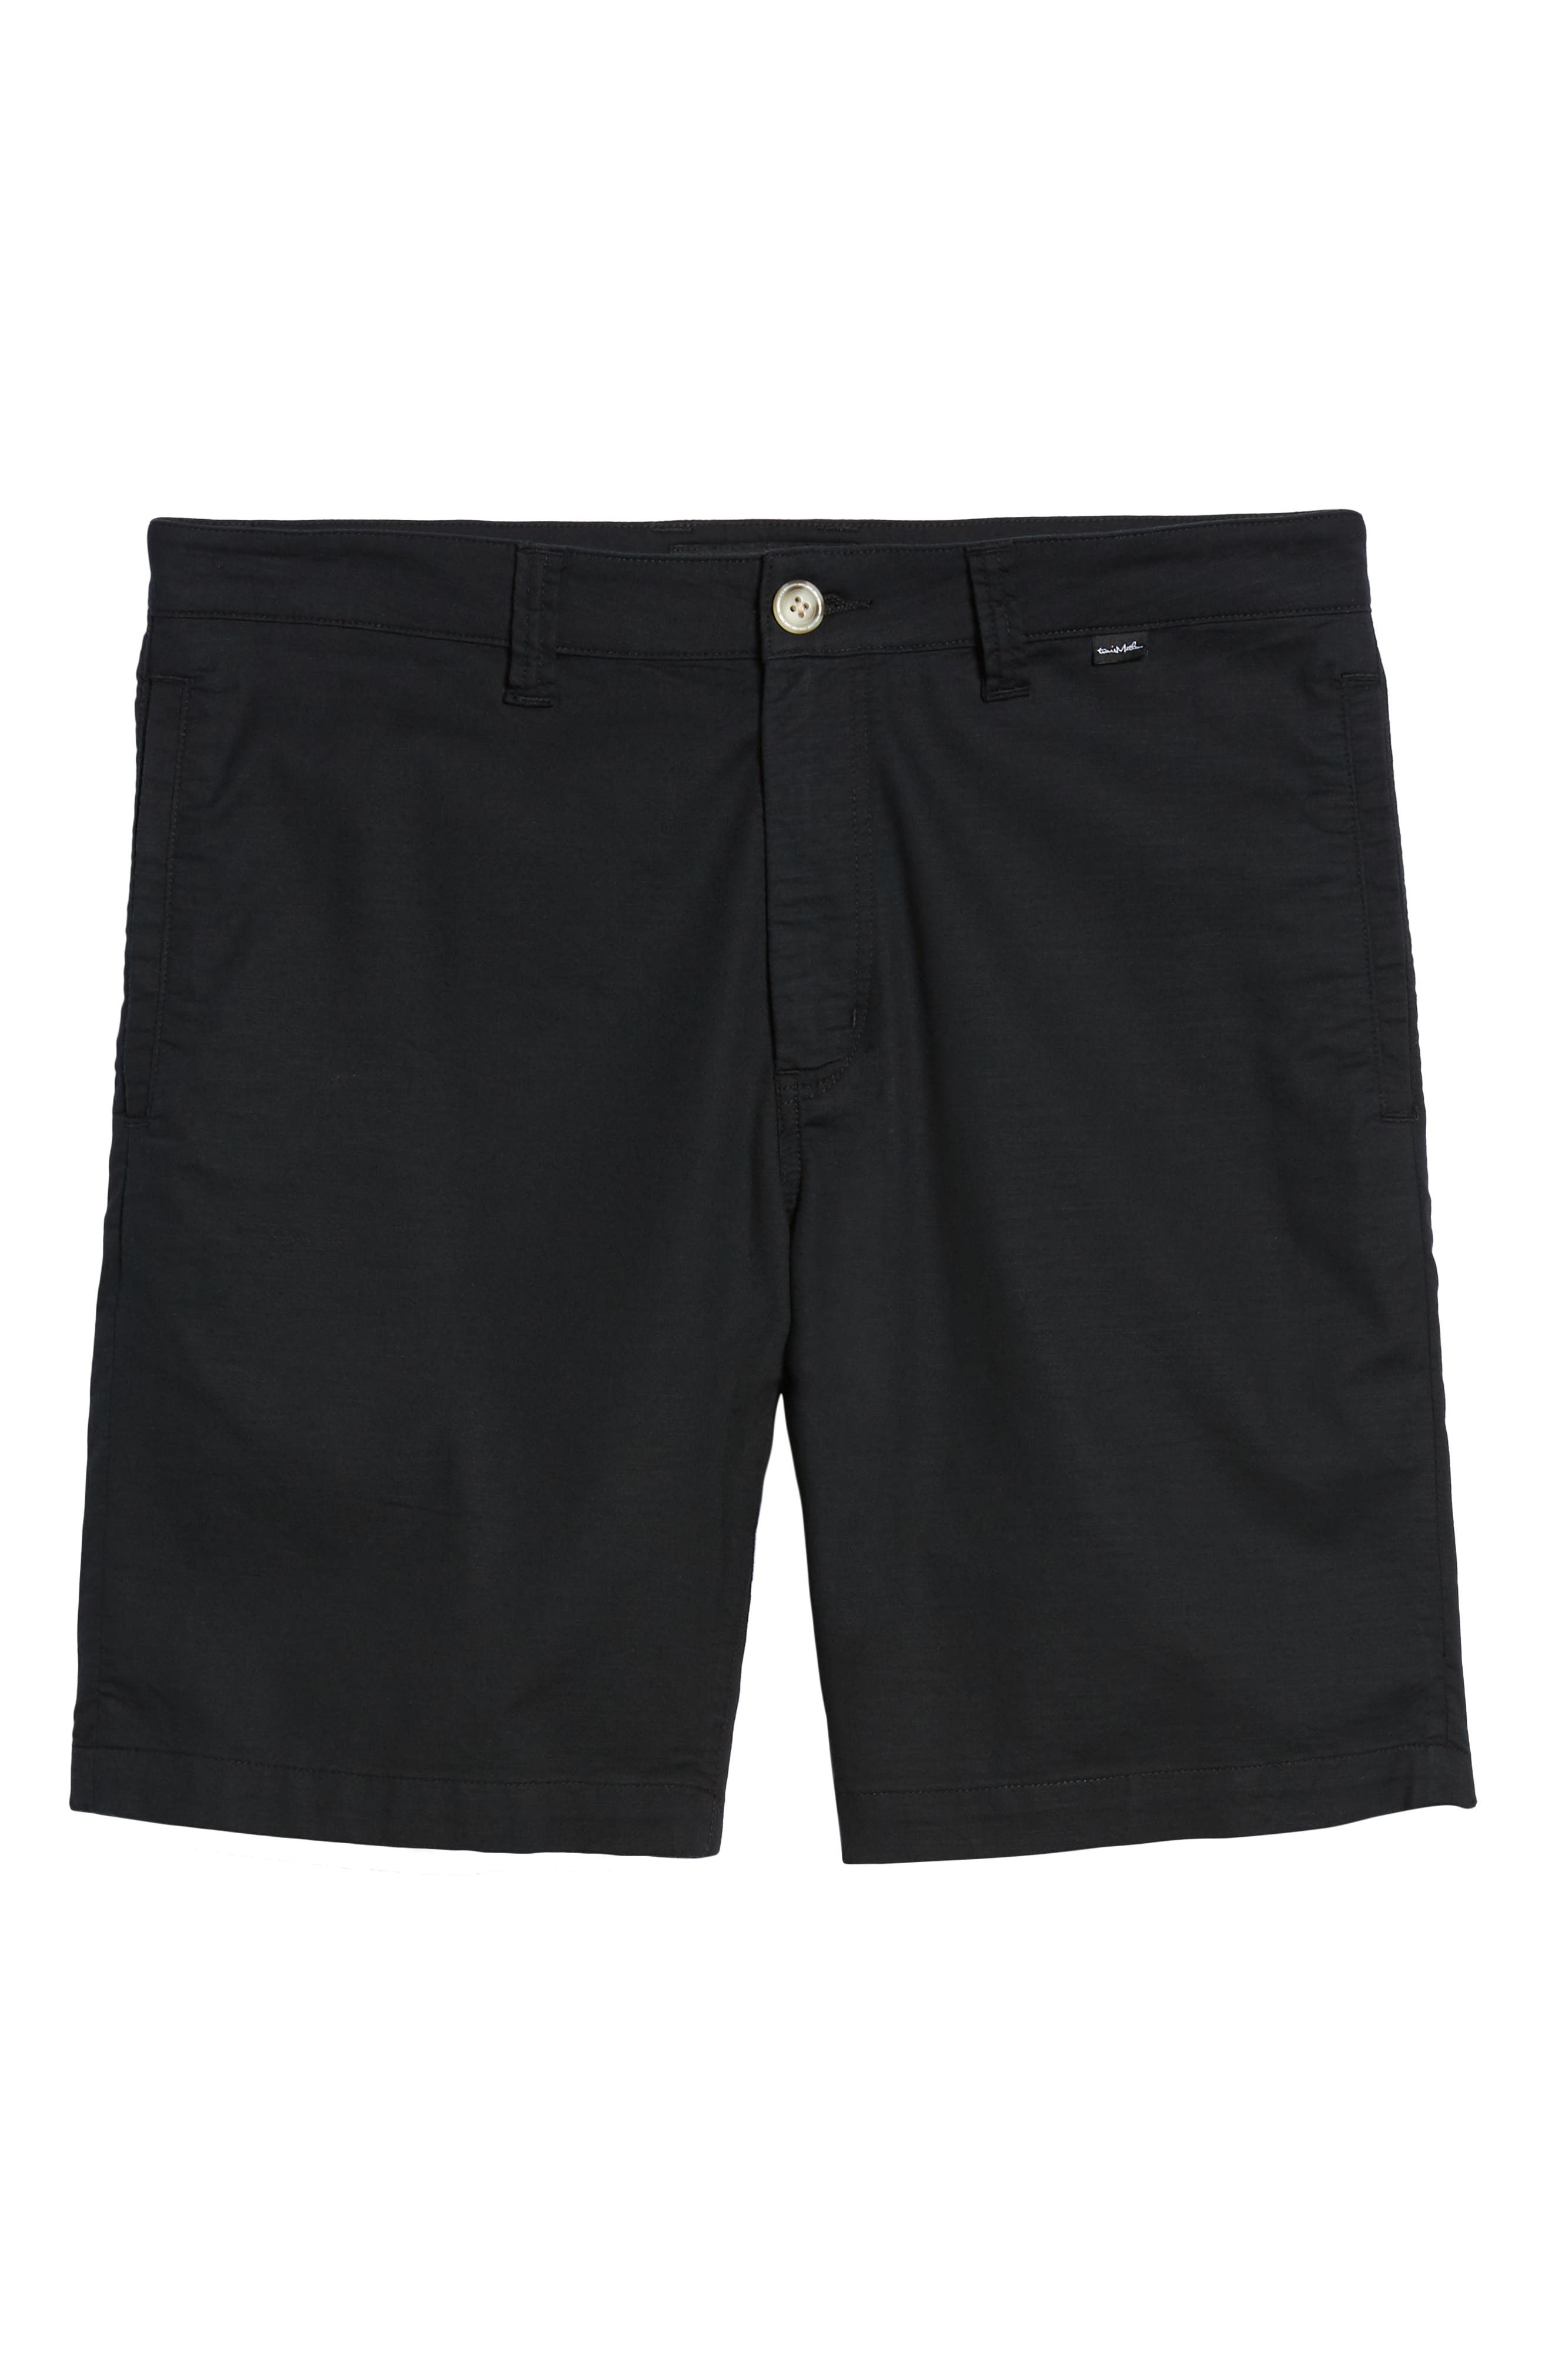 Swearengen Shorts,                             Alternate thumbnail 6, color,                             BLACK